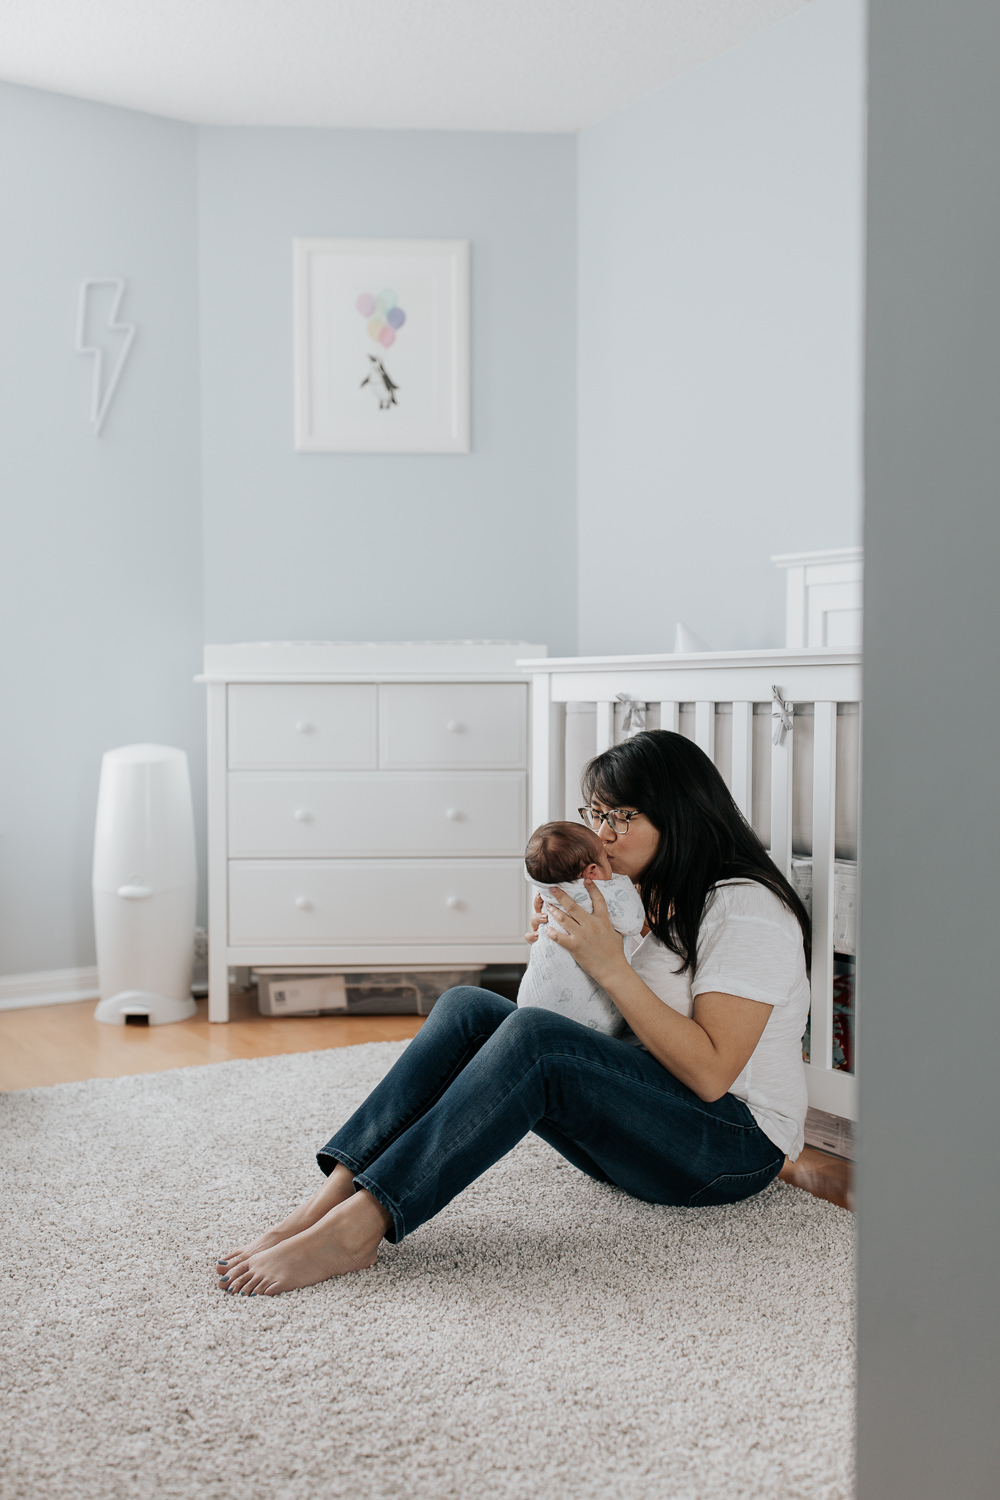 new mother with long dark hair wearing glasses sitting in front of nursery crib holding 2 week old baby boy in her arms, kissing son on forehead -York Region Lifestyle Photography